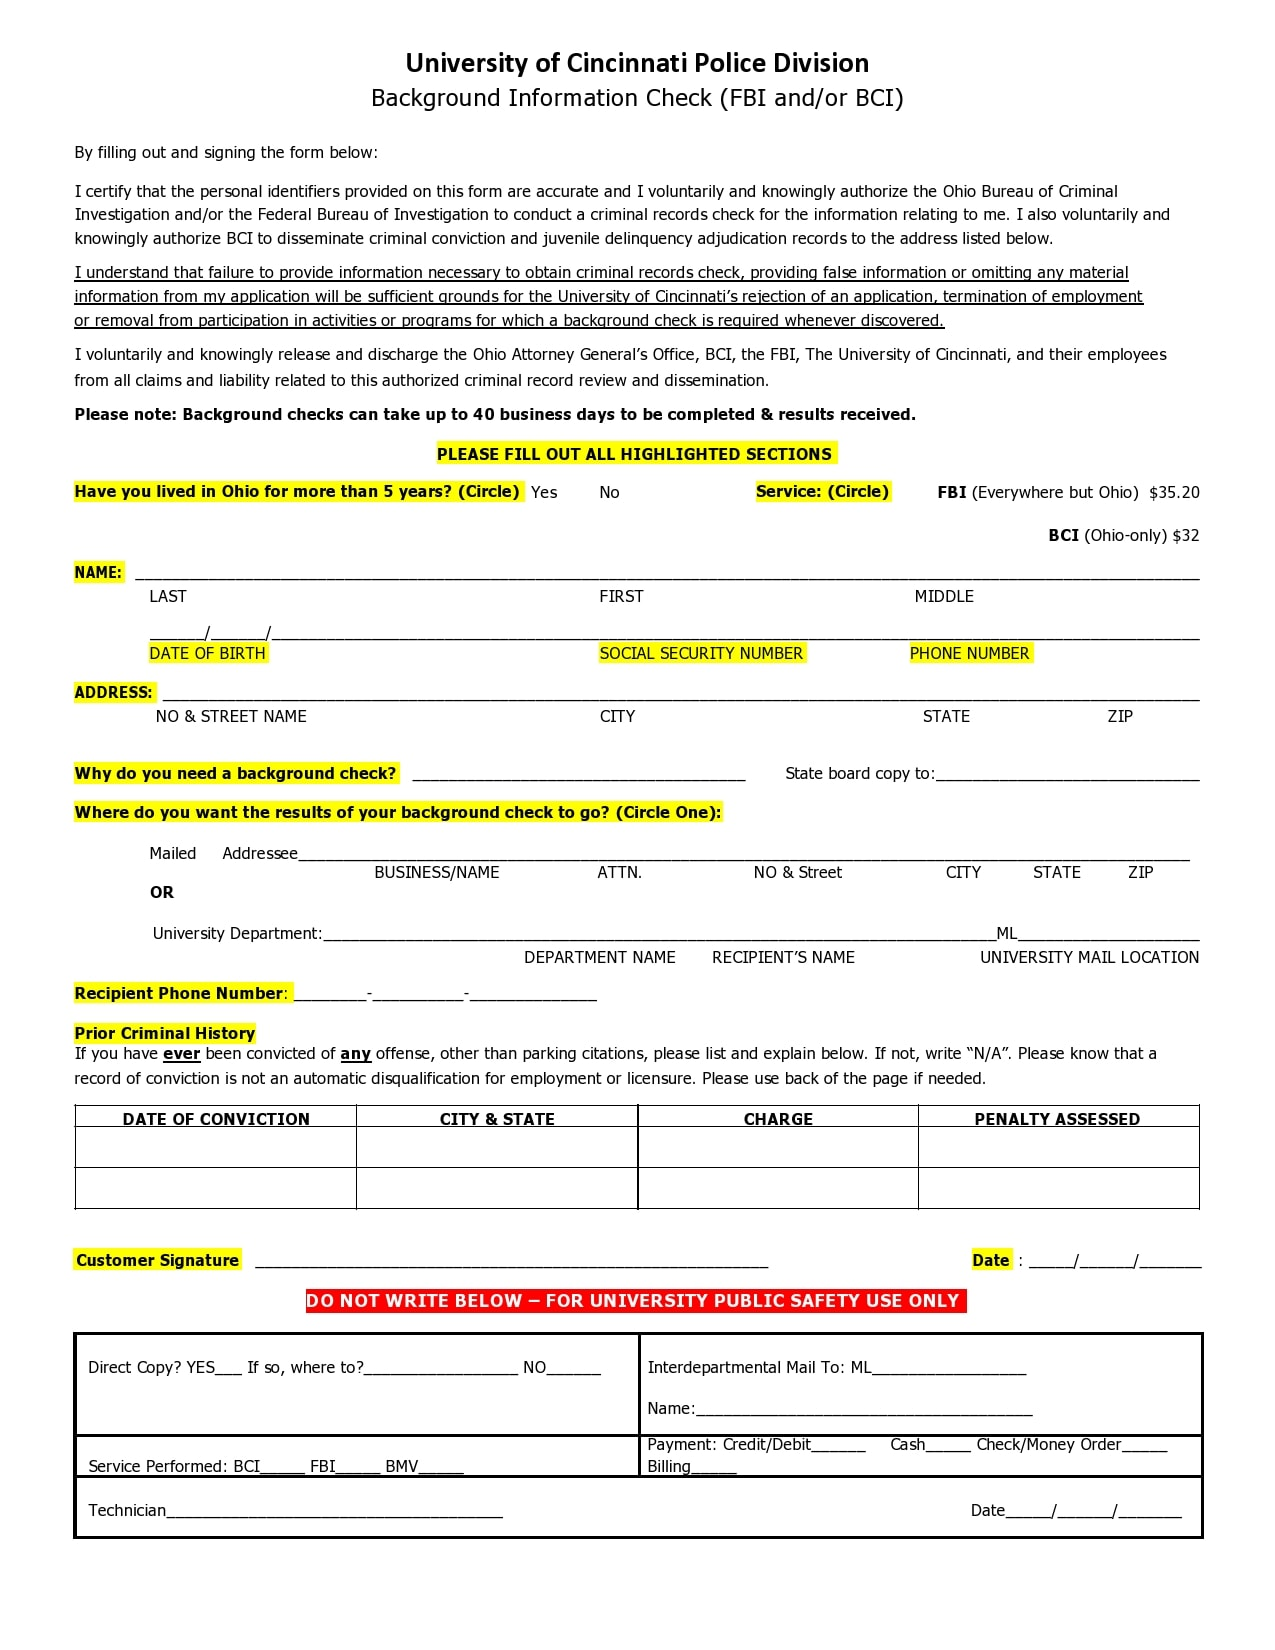 background check form 07